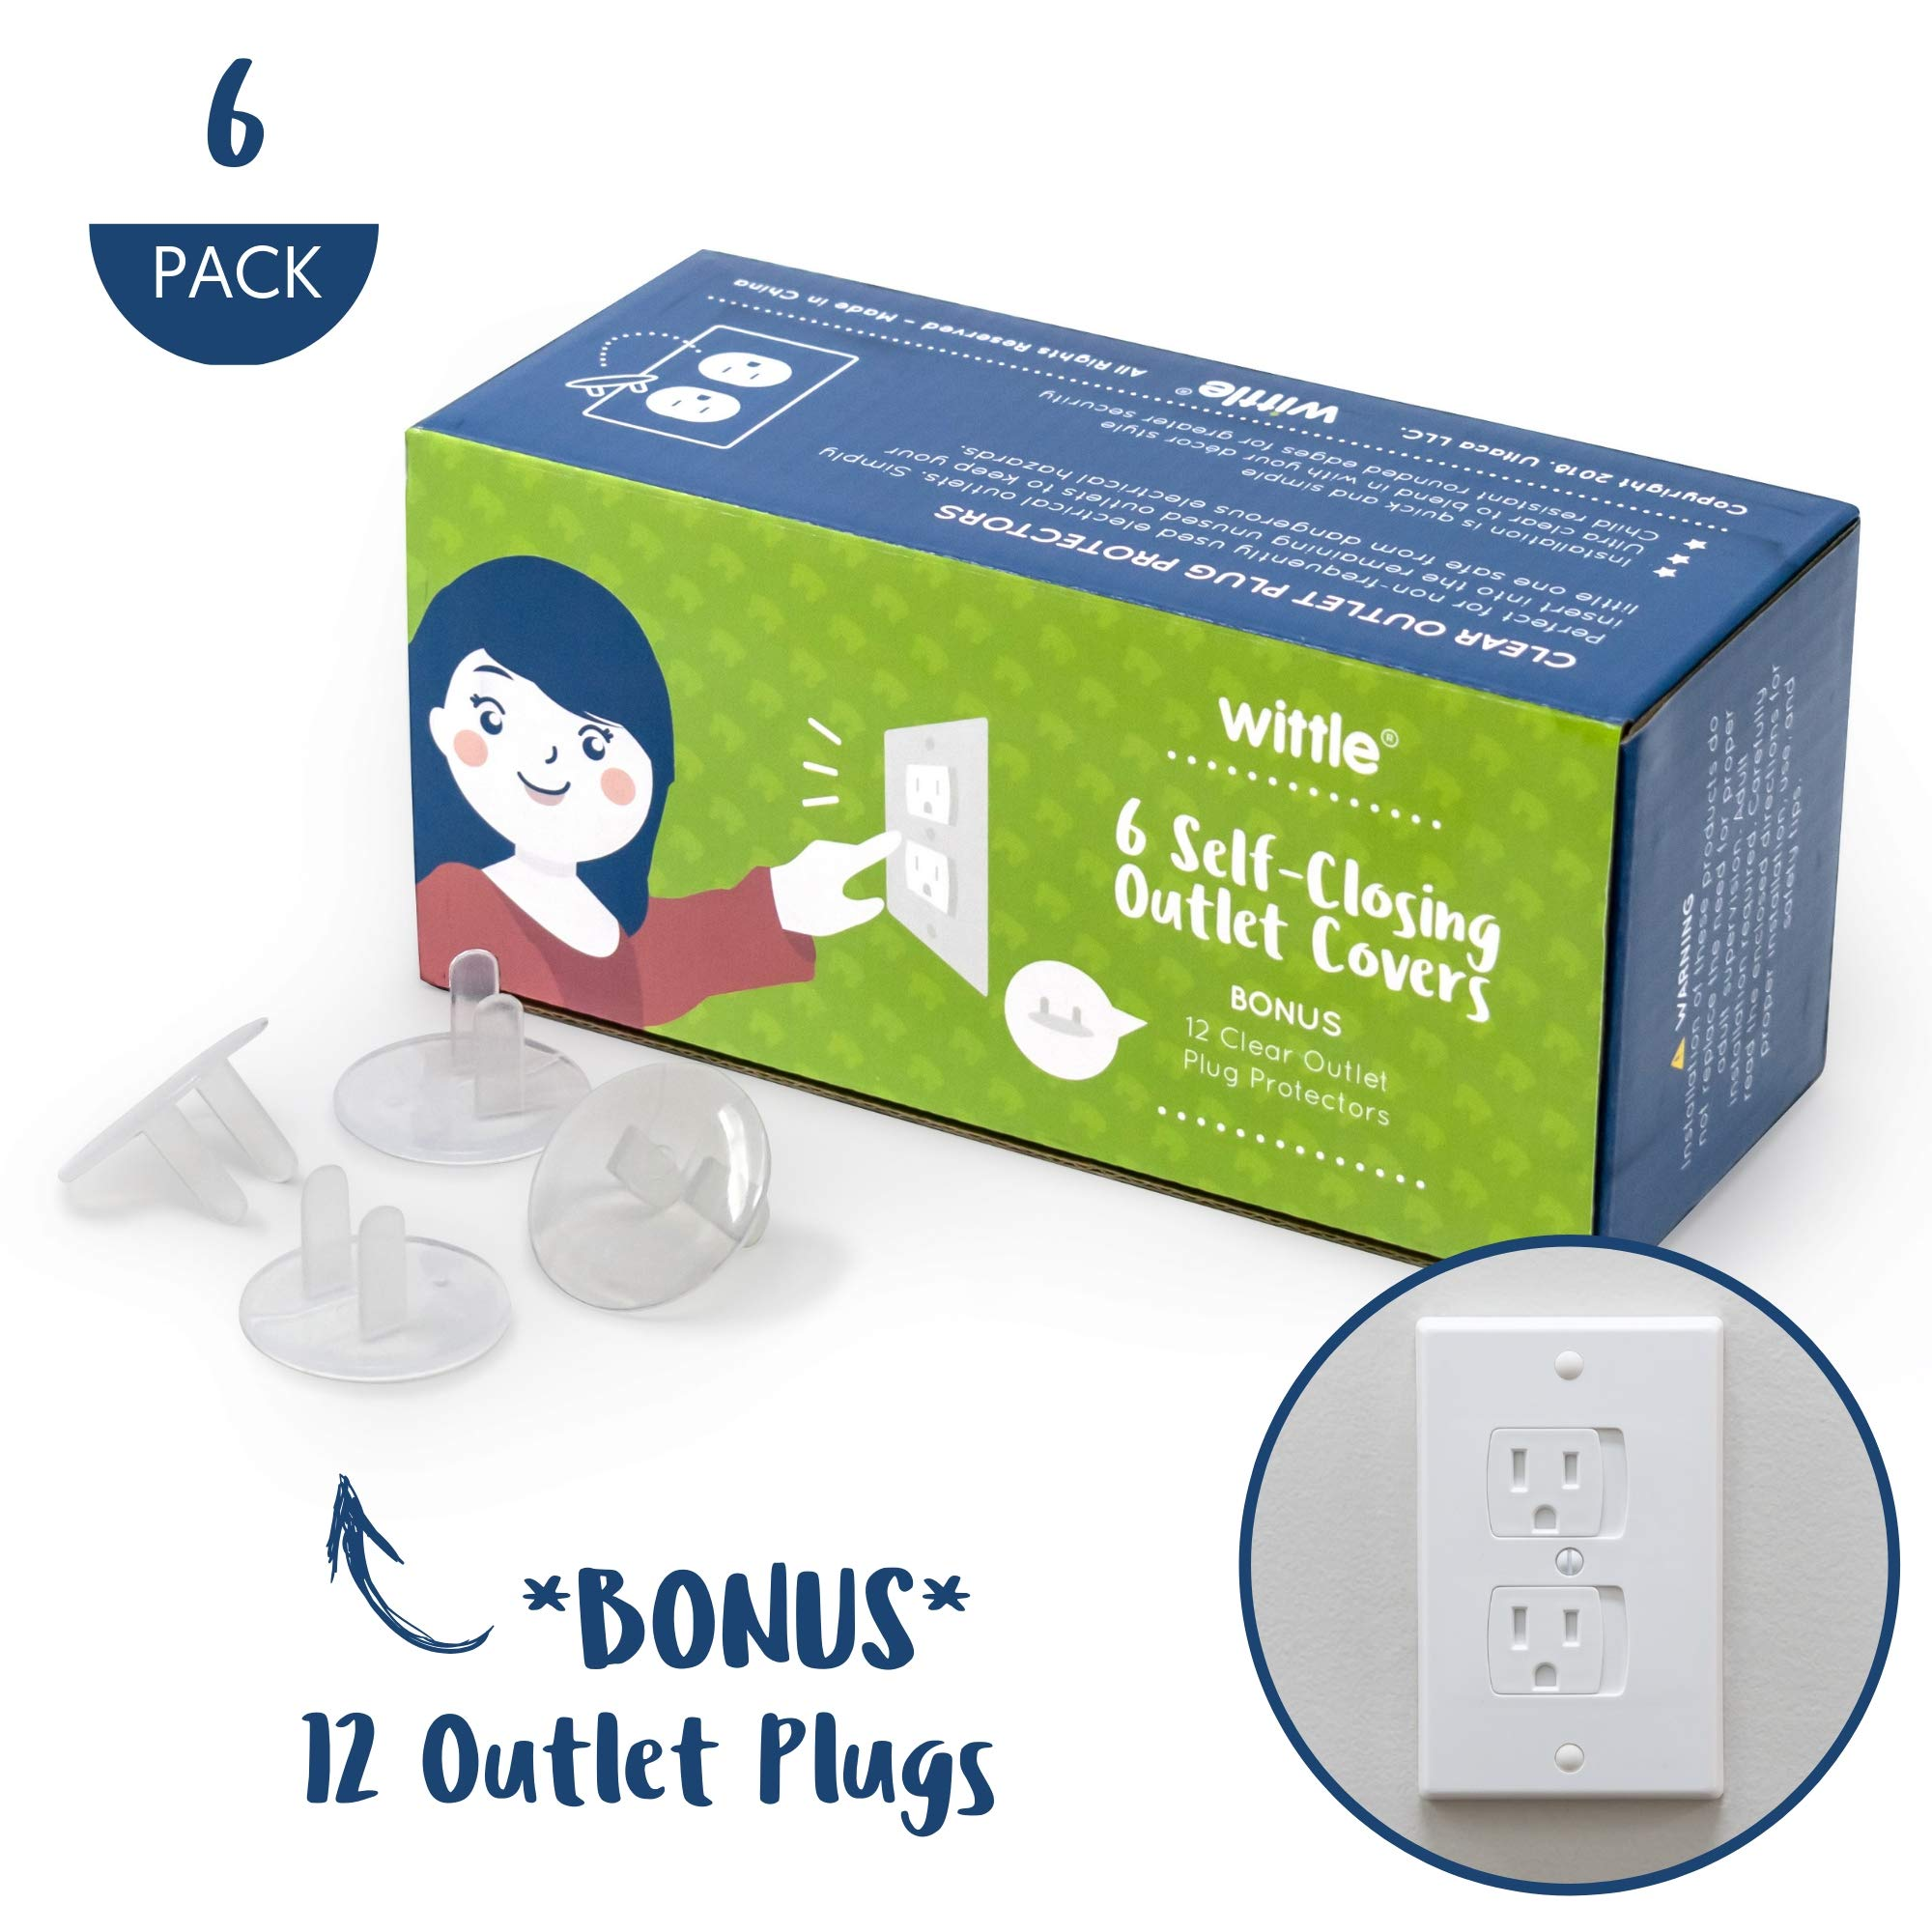 Wittle Self Closing Outlet Covers (6 White) Plus 12 Clear Plug Cover Outlet Protectors - Baby Proofing Outlets with Electrical Child Safety Kit by Wittle